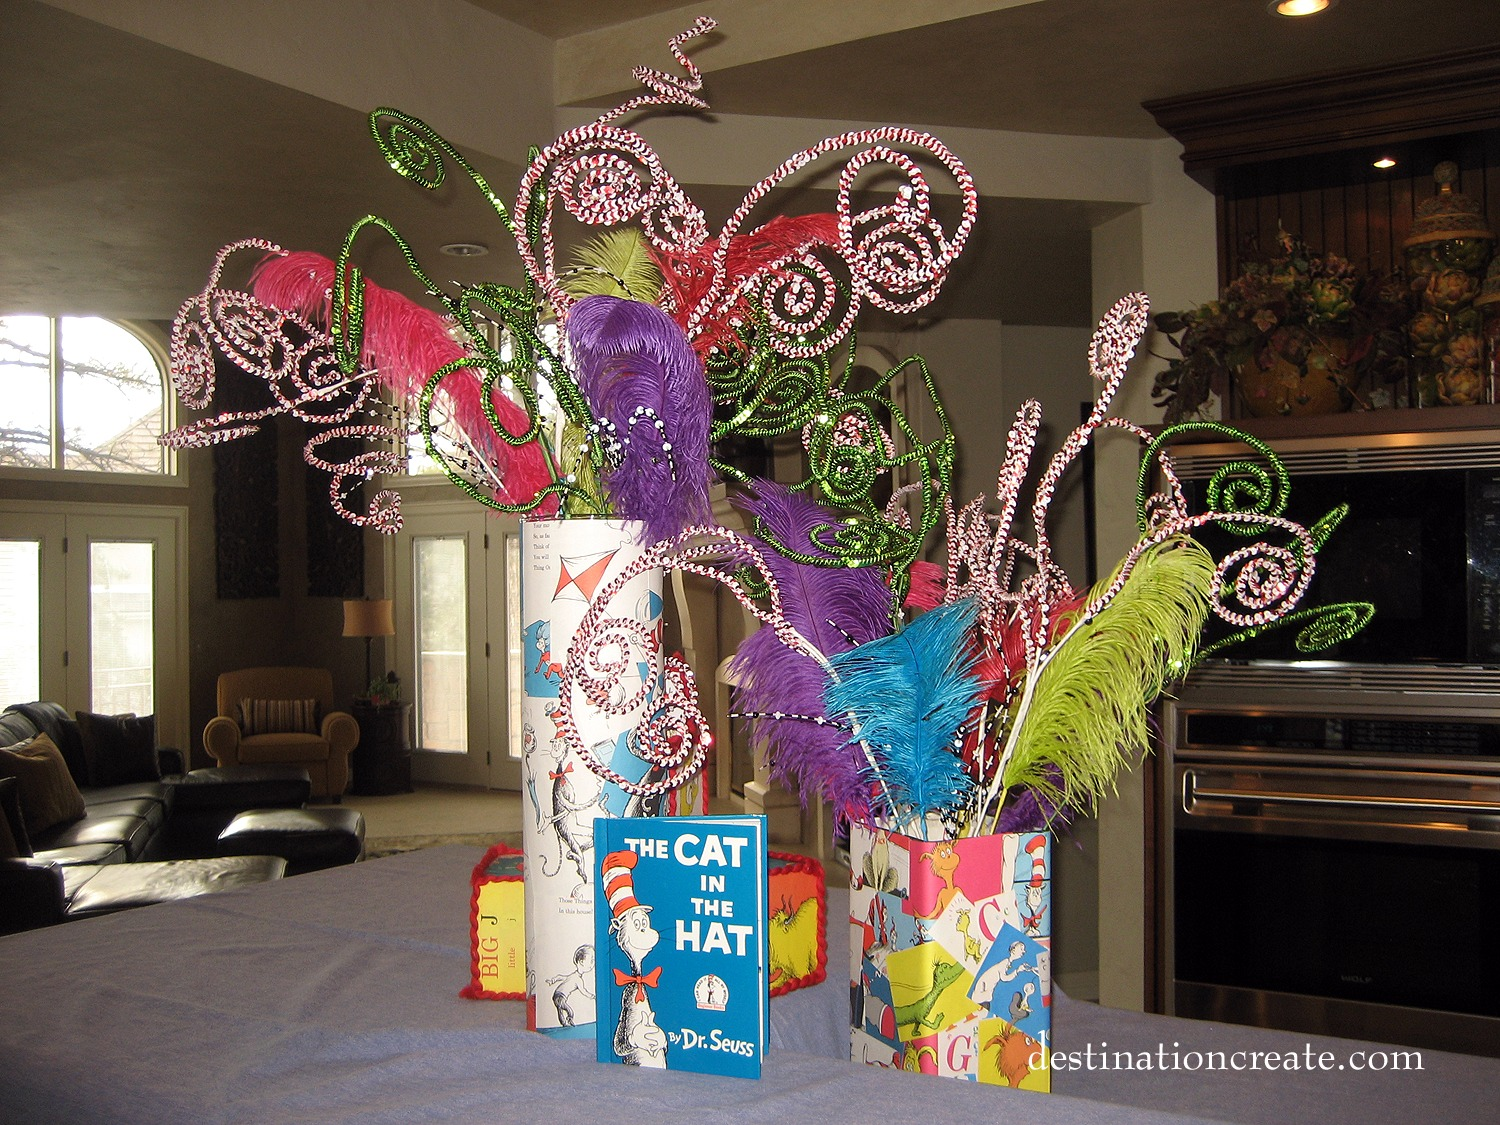 dr seuss party destination create - Dr Seuss Christmas Decorations